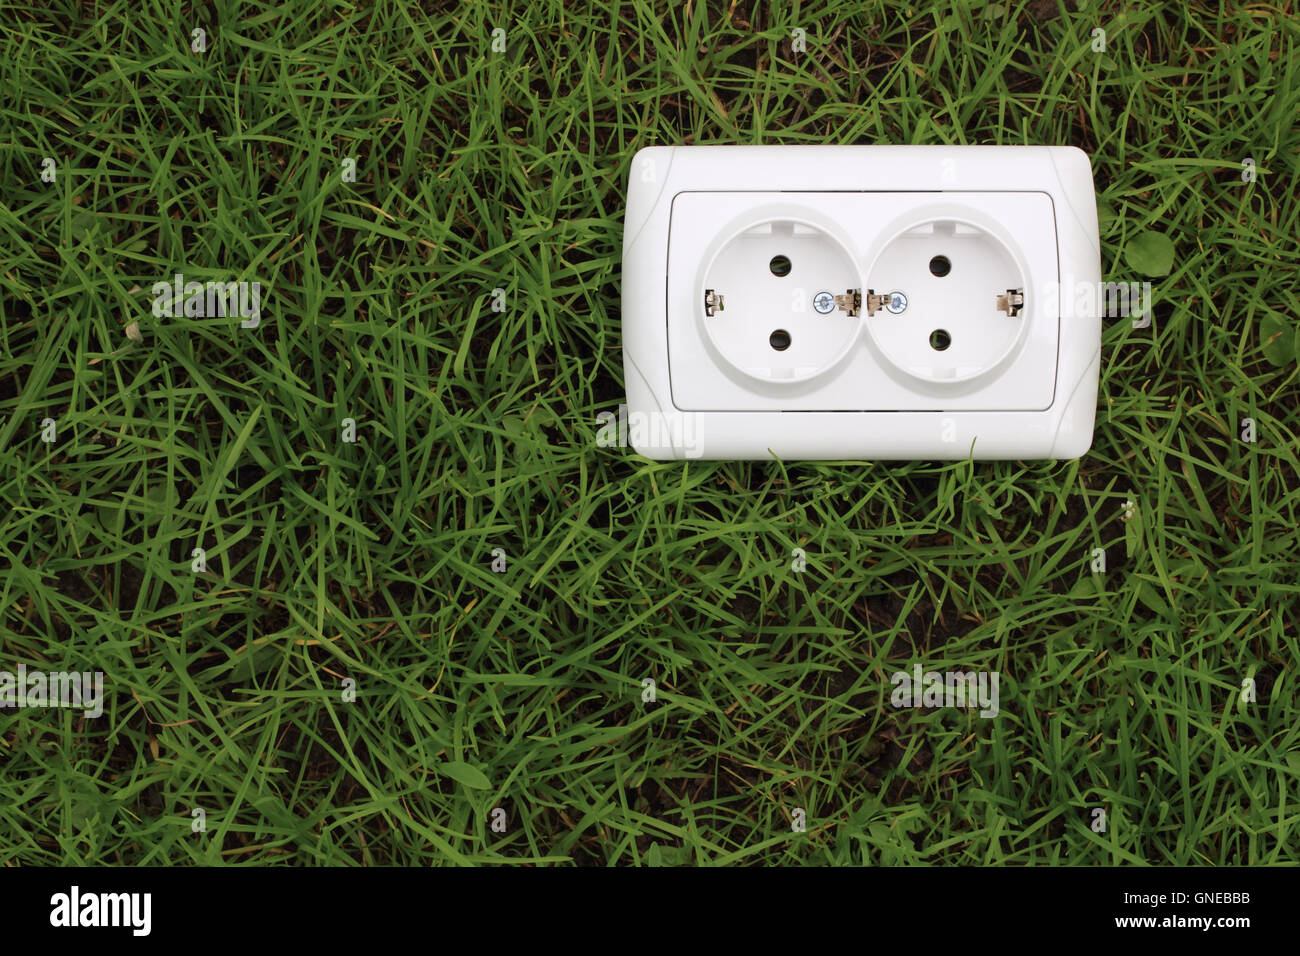 Straßenlaterne Mit Batterie Electric Stockfotos And Electric Bilder Alamy